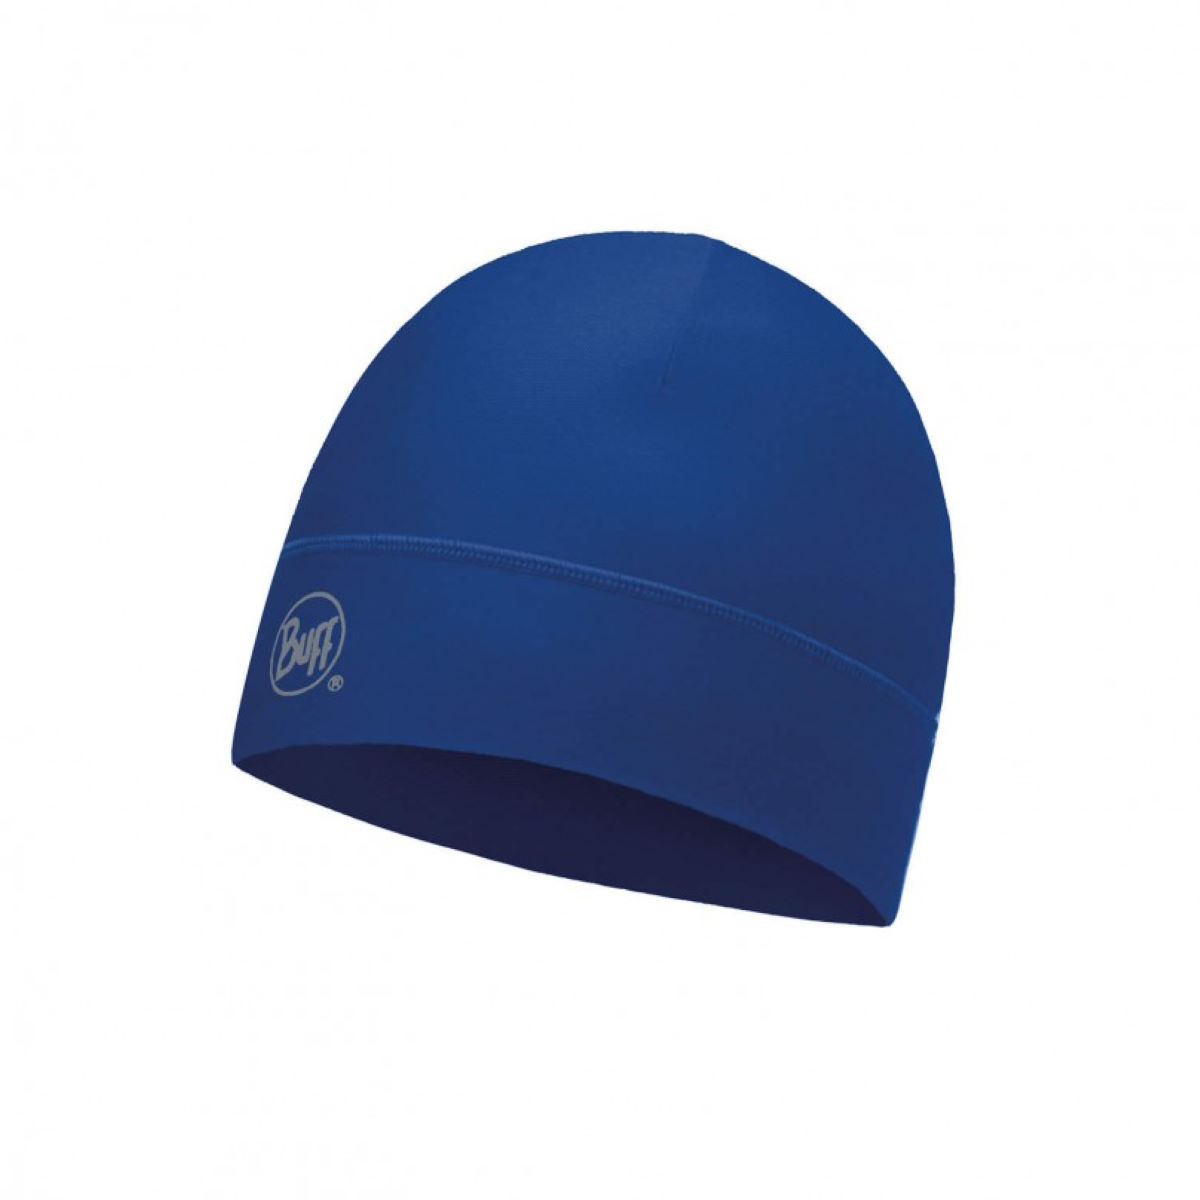 Buff Microfiber 1 Layer Hat   Casual Headwear